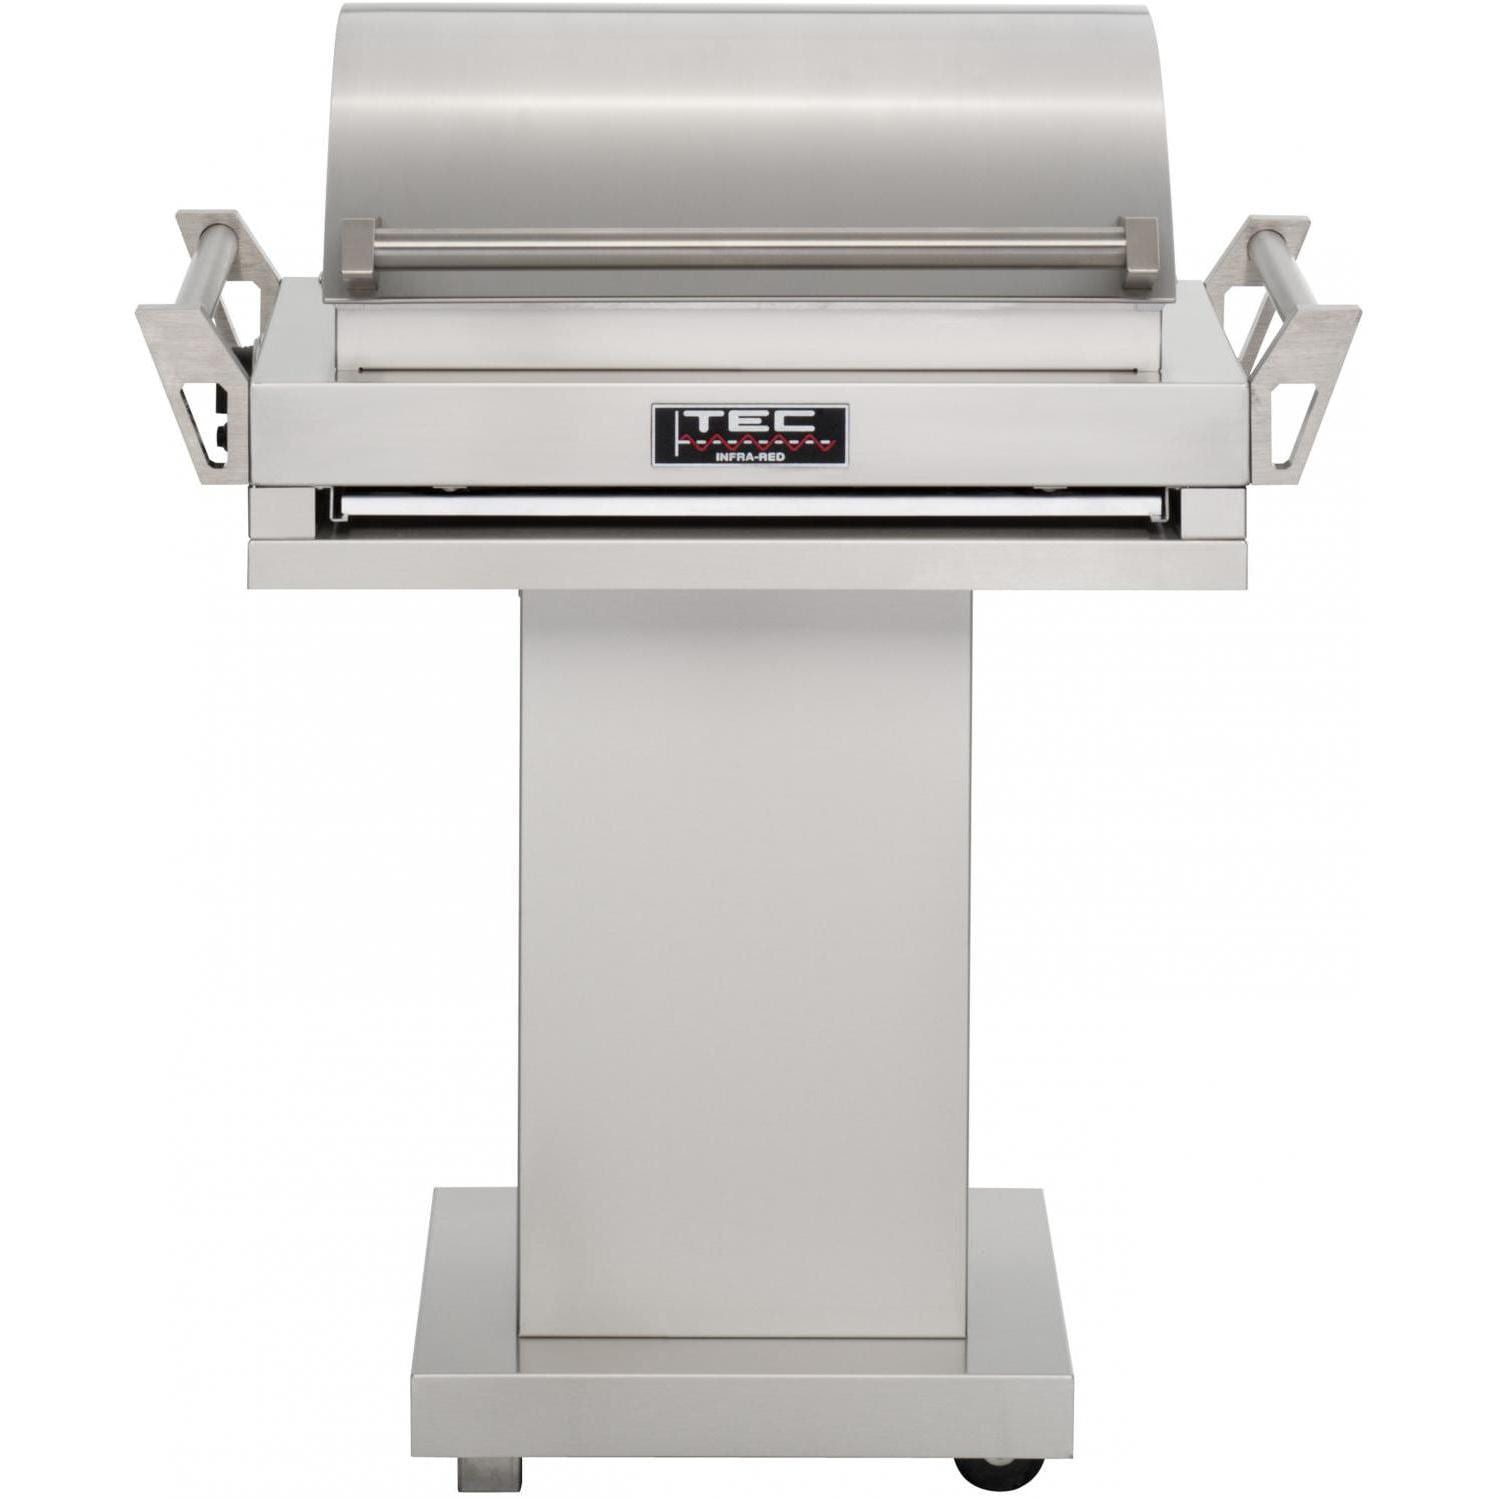 TEC G-Sport FR 30-Inch Freestanding Infrared Grill